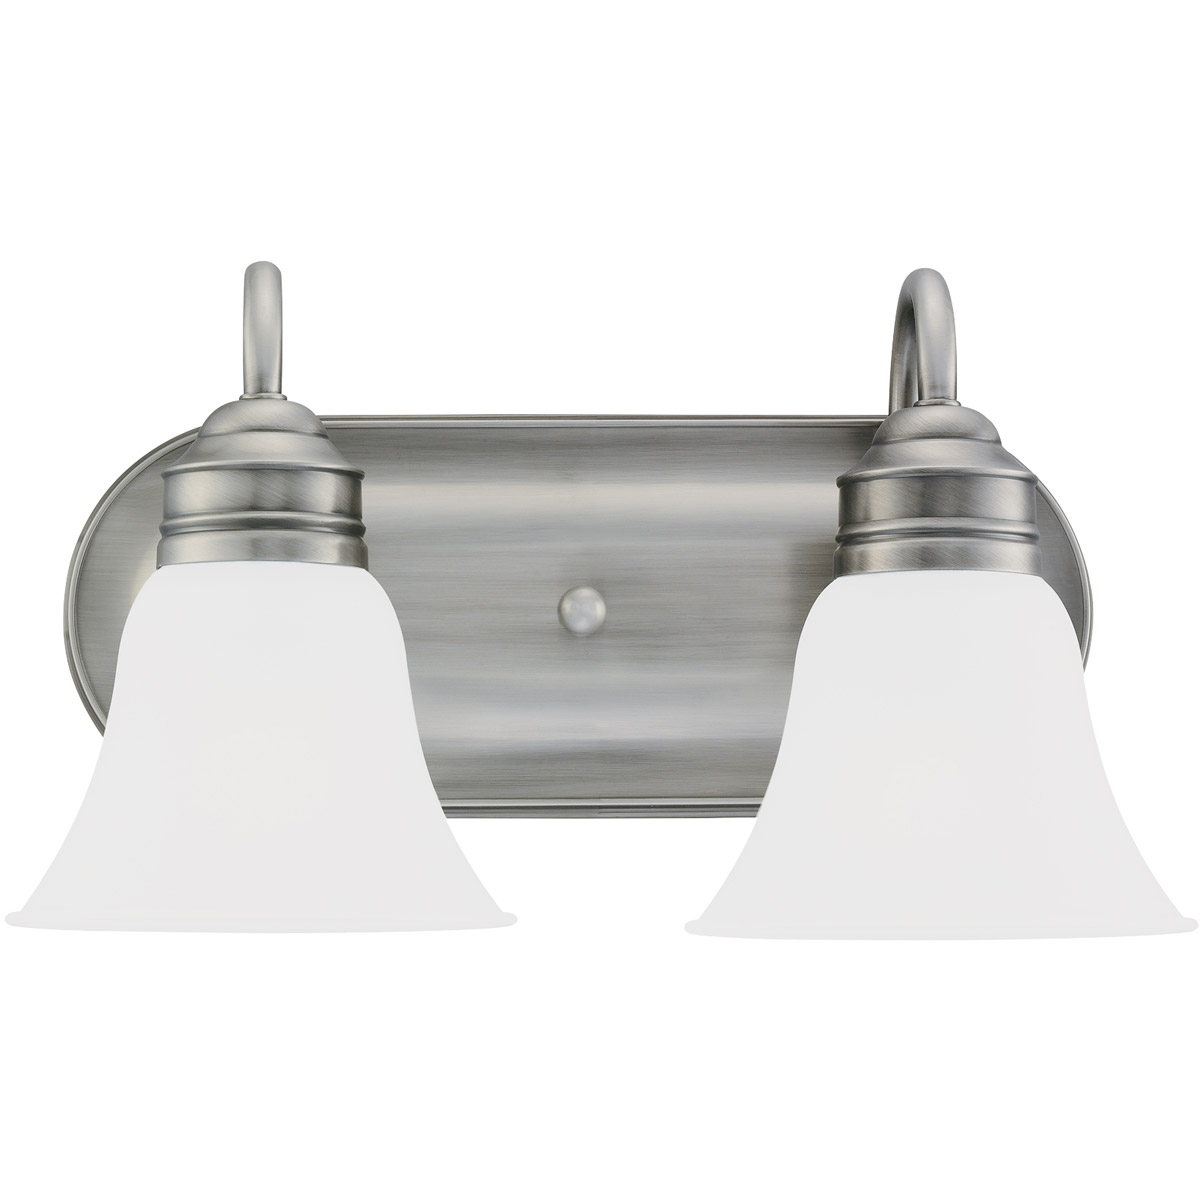 Sea Gull Lighting Gladstone 2 Light Bath Vanity in Antique Brushed Nickel 44851-965